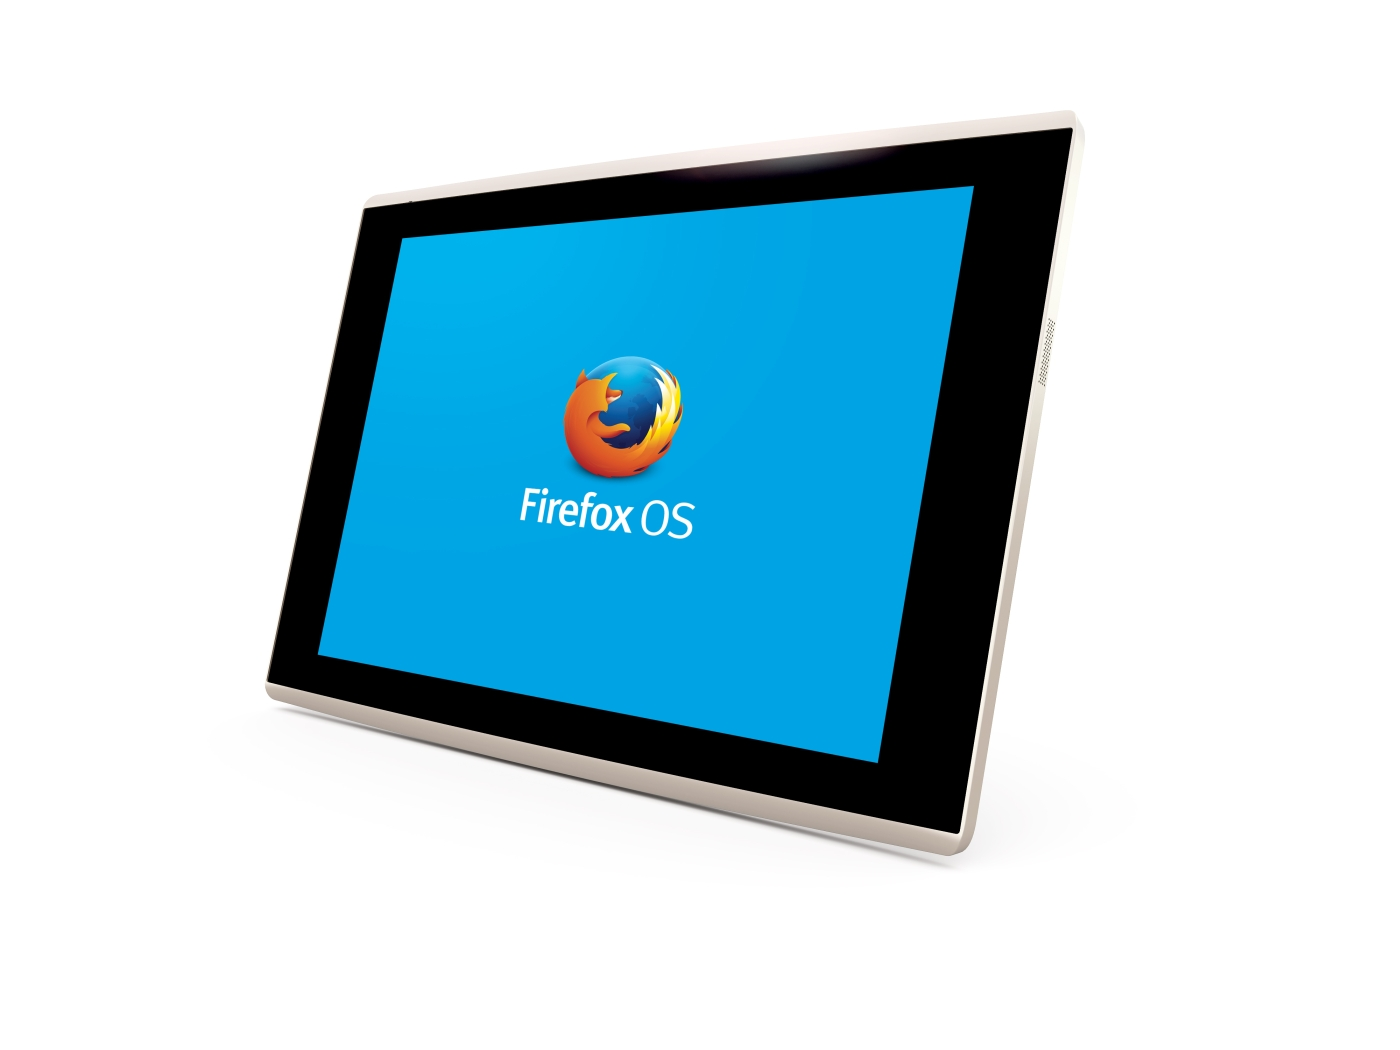 10.1-inch Foxconn Firefox tablet